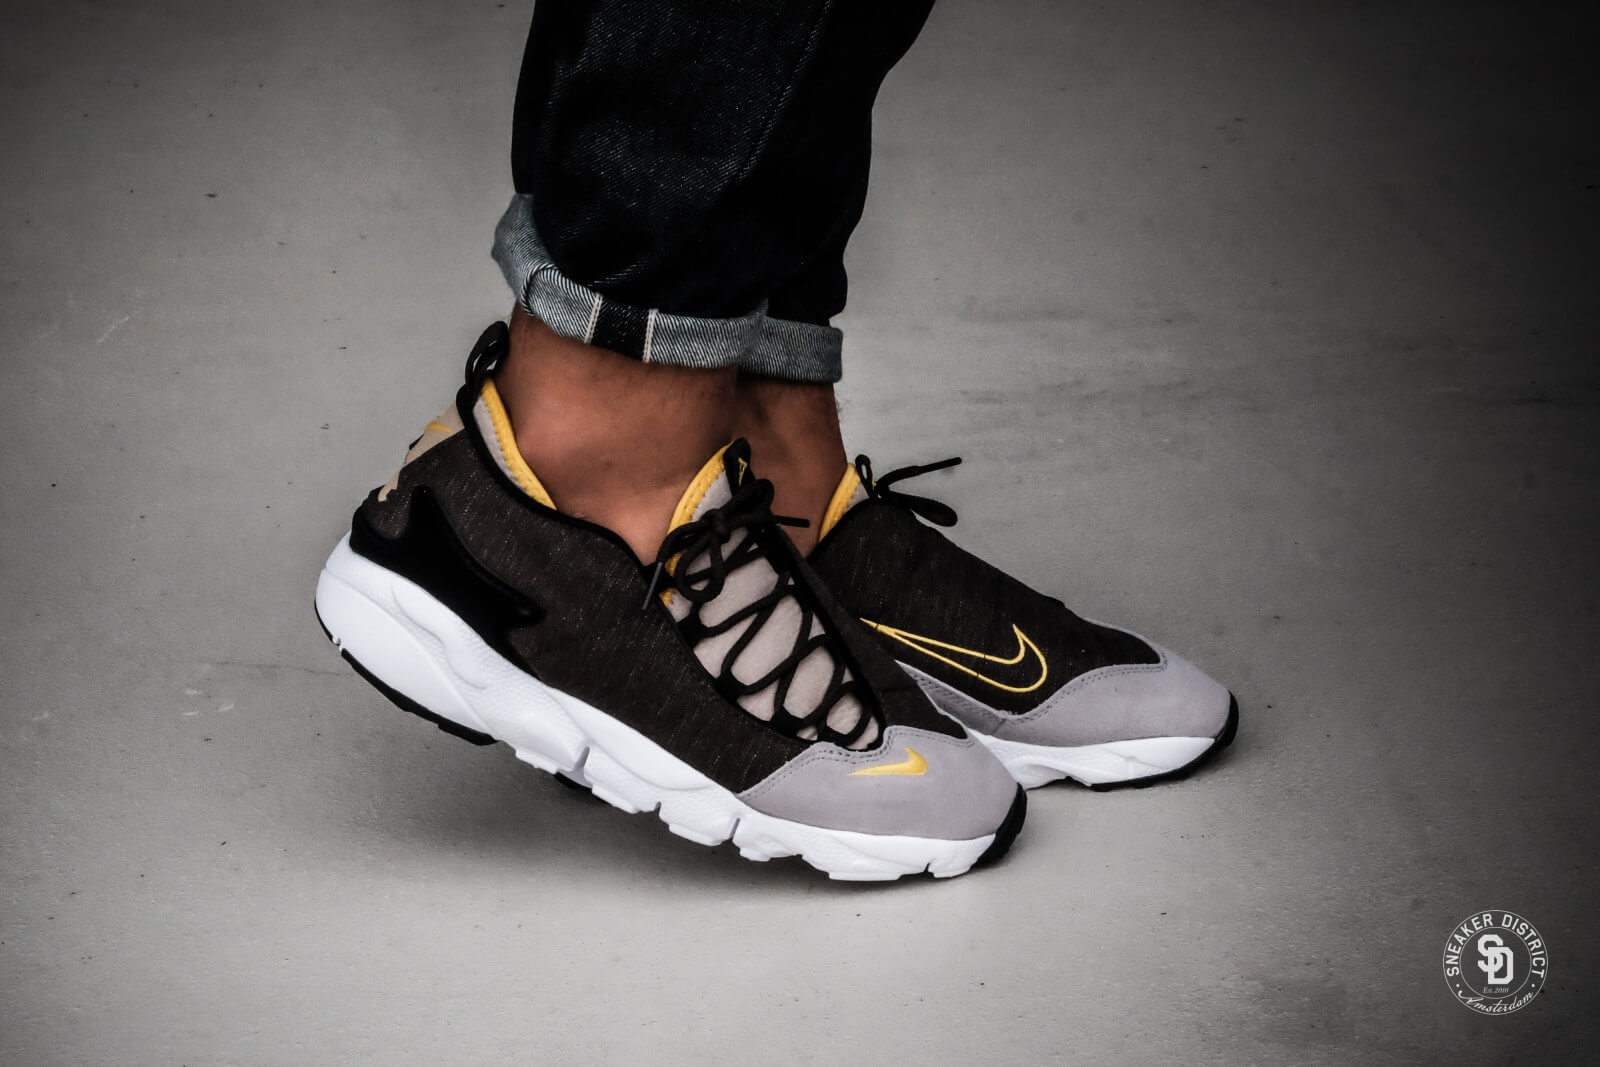 f5b7a8a4cba8 ... Shoe SequoiaKhakiWolf GreyMineral Gold Nike Air Footscape NM  SequoiaMineral Gold-Khaki - 852629-301 .